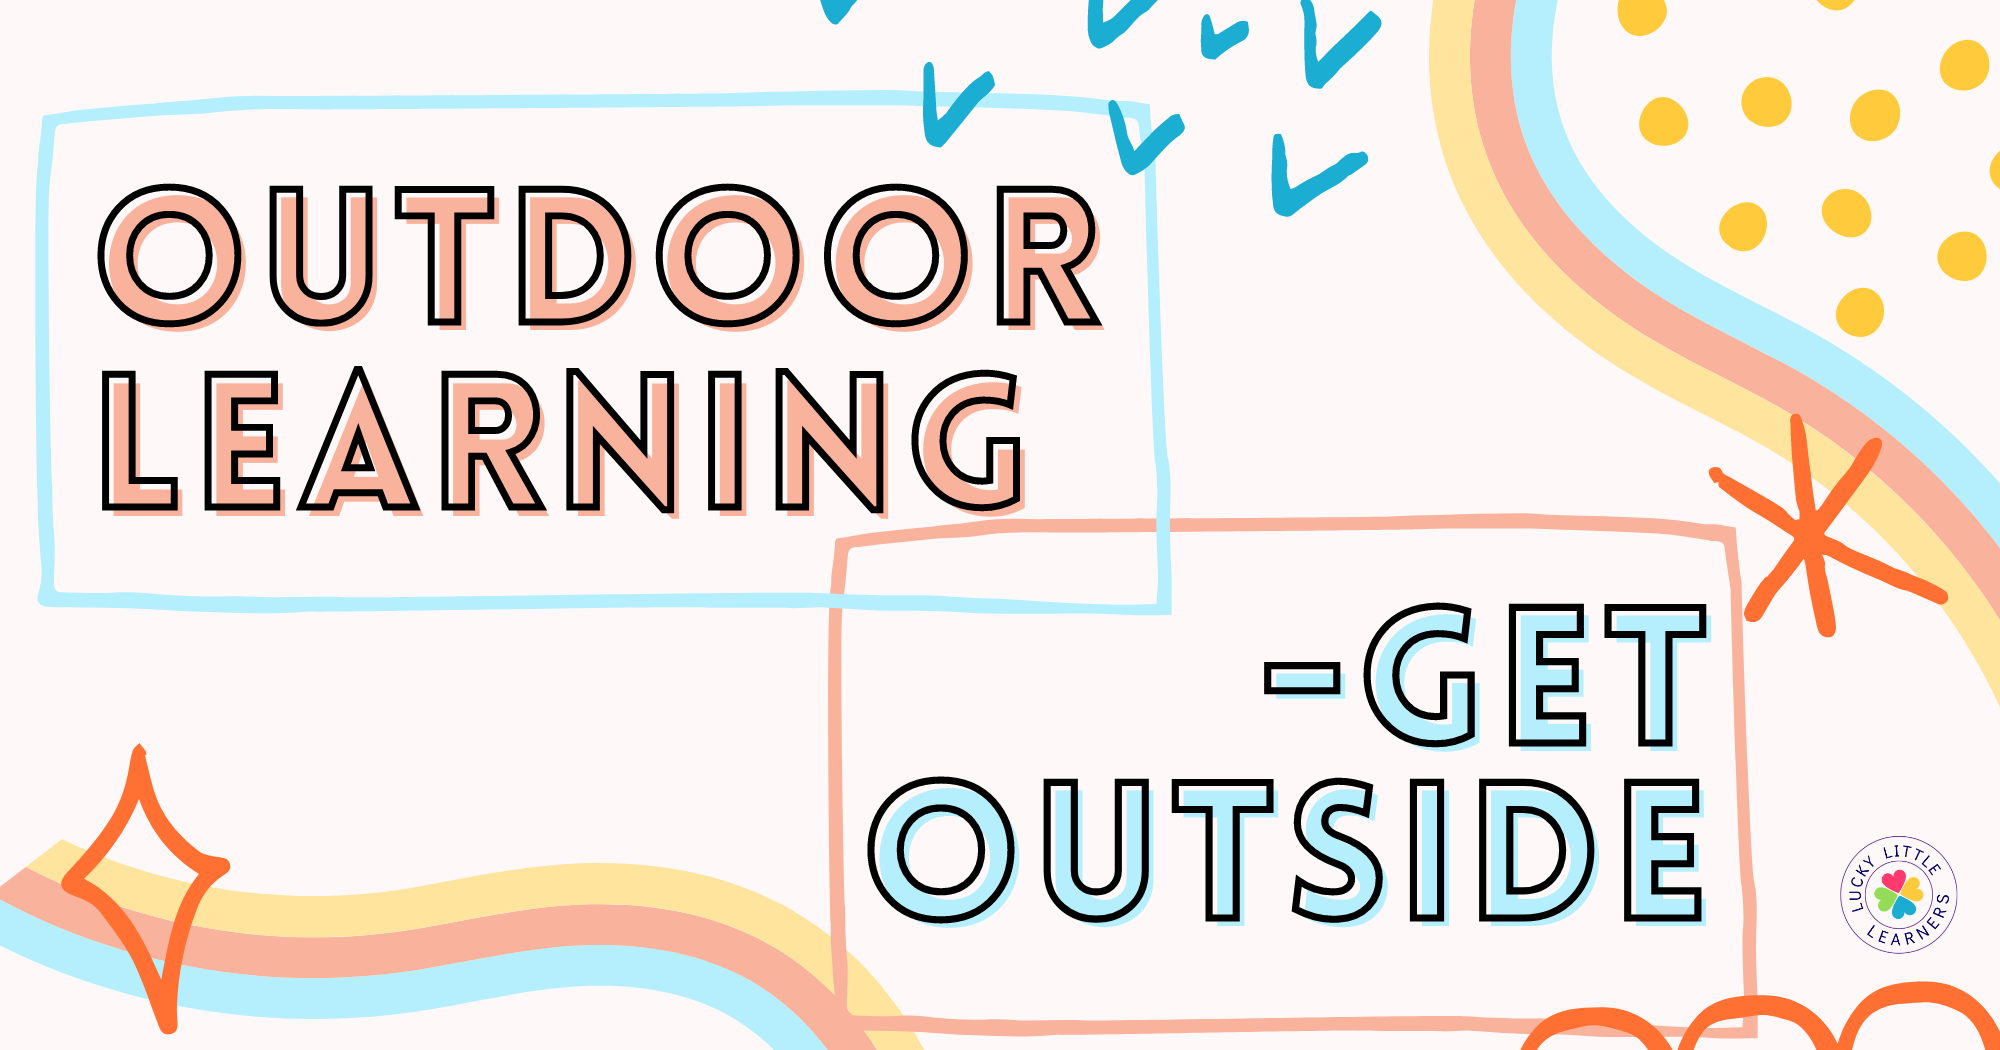 Outdoor Learning-Get Outside!